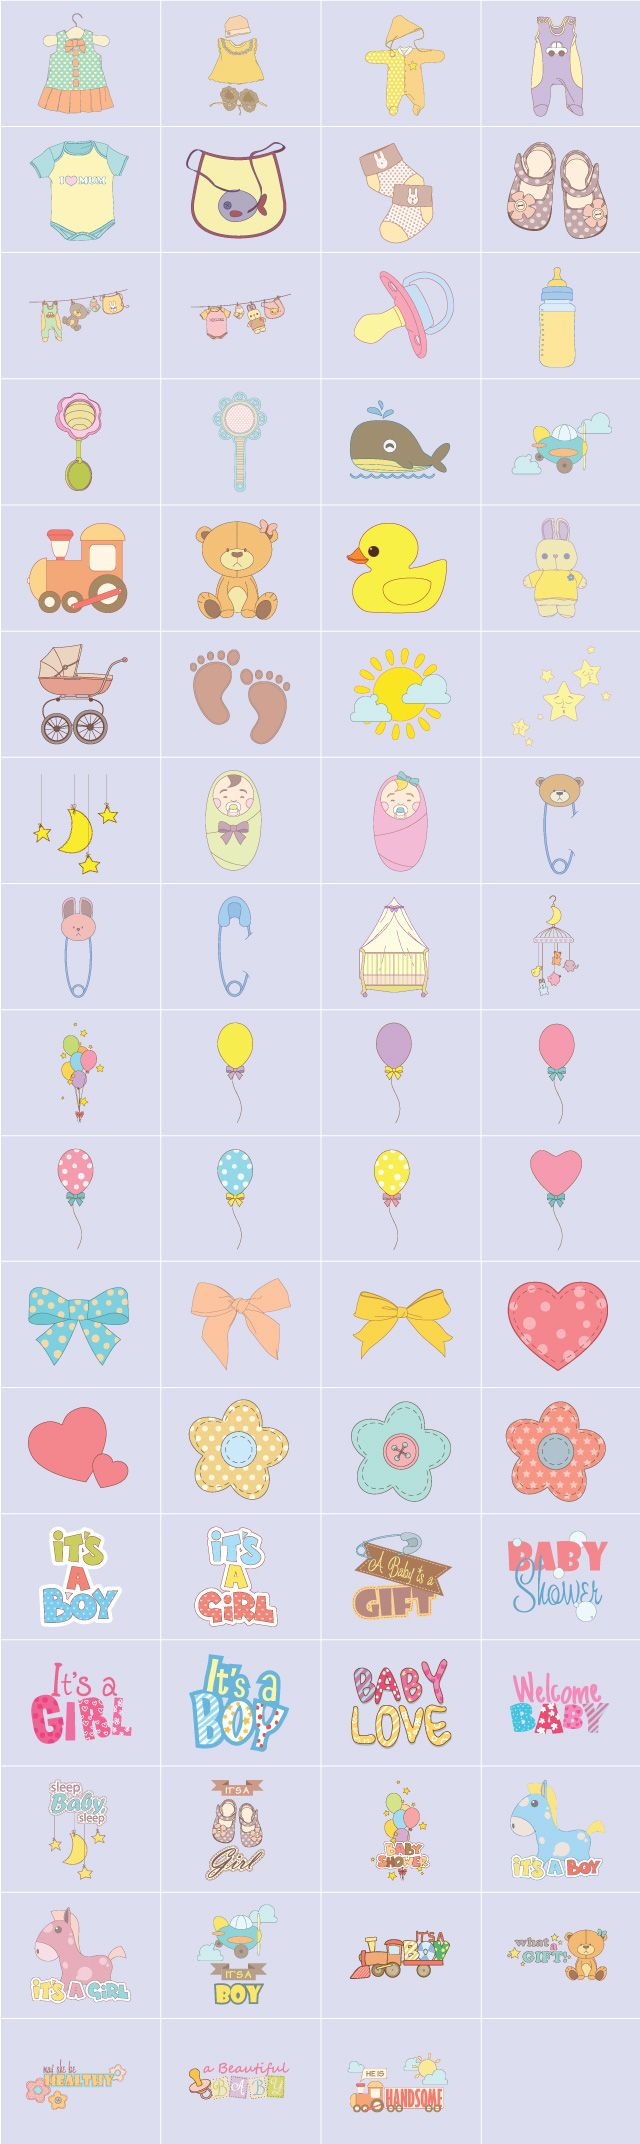 bably love clipart package